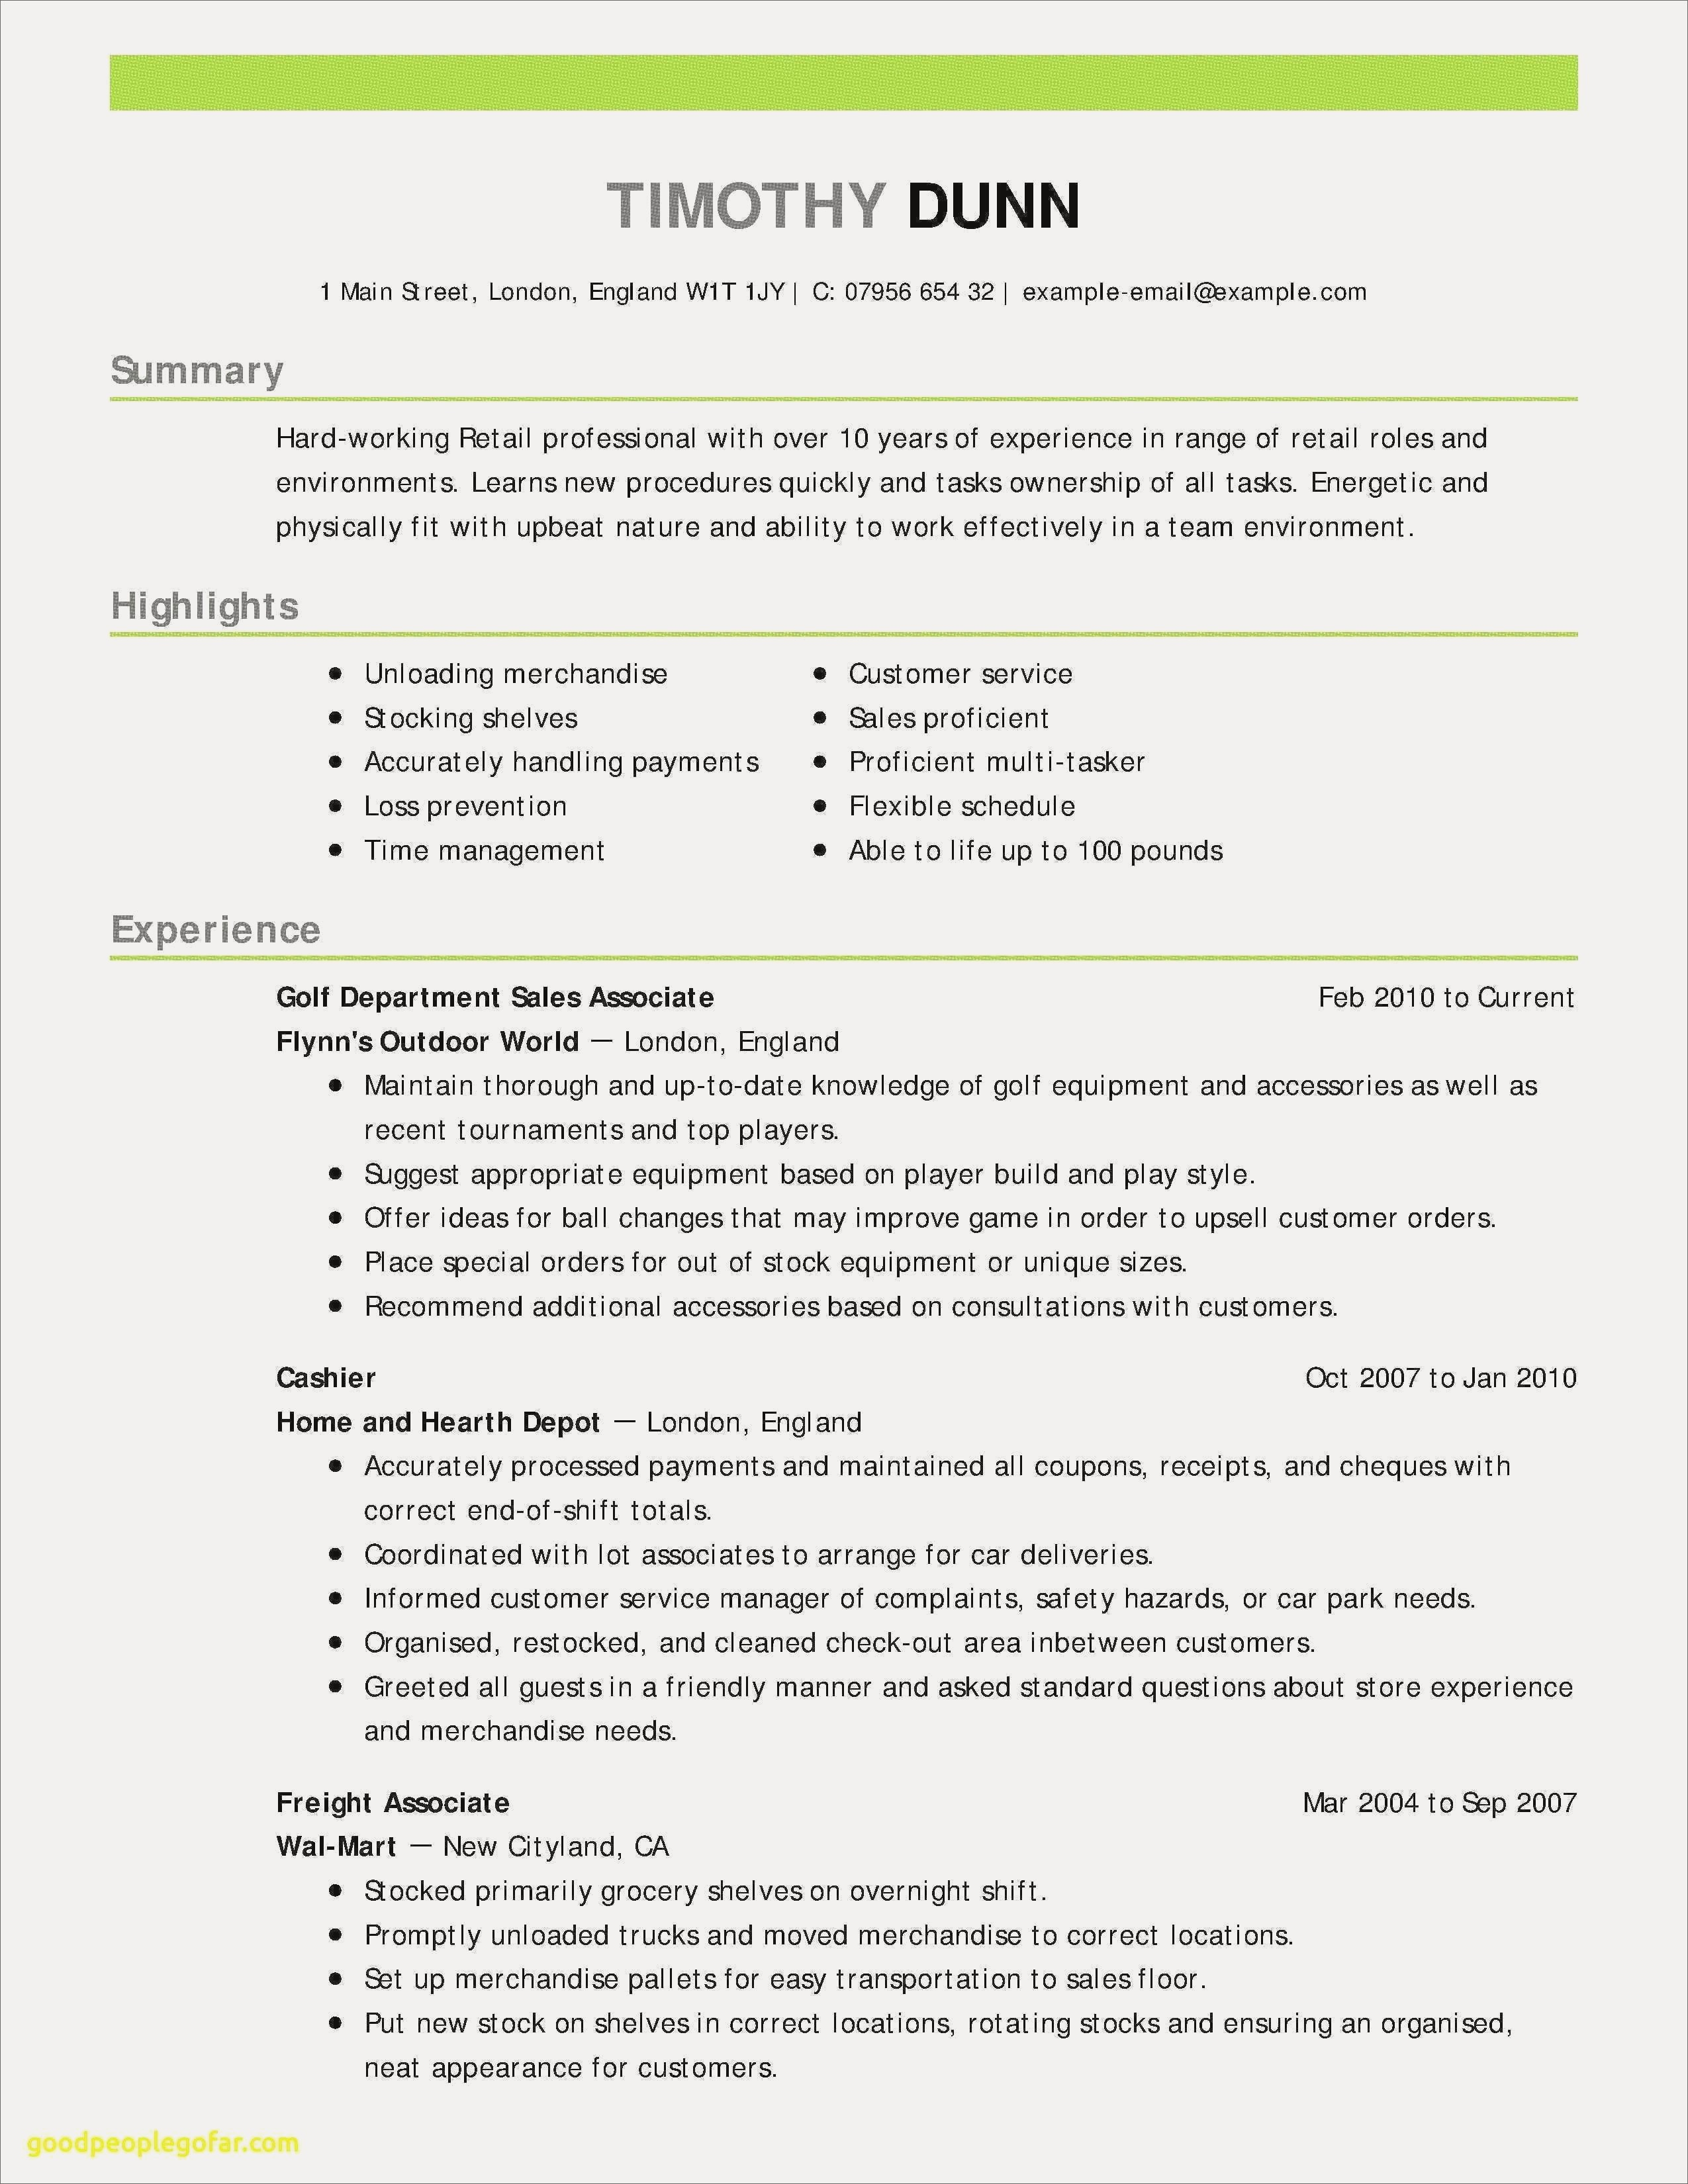 Customer Service Resume Template Free - Valet Parking Resume Sample Refrence Customer Service Resume Sample